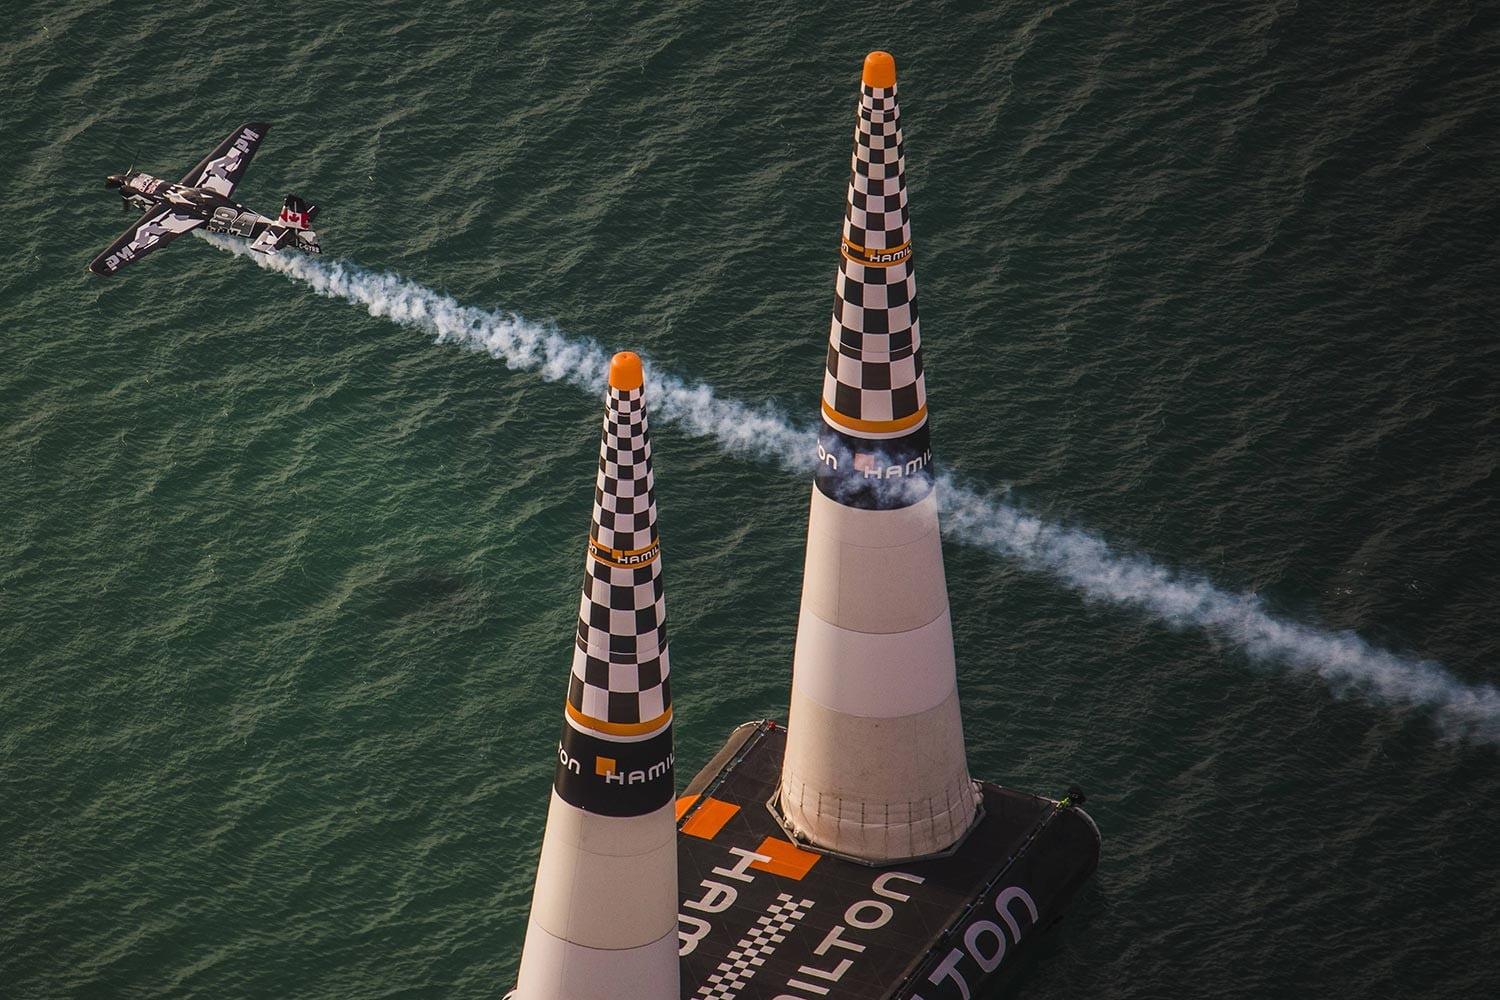 judging red bull air races with tech race abu dhabi 1  daniel grund redbull content pool